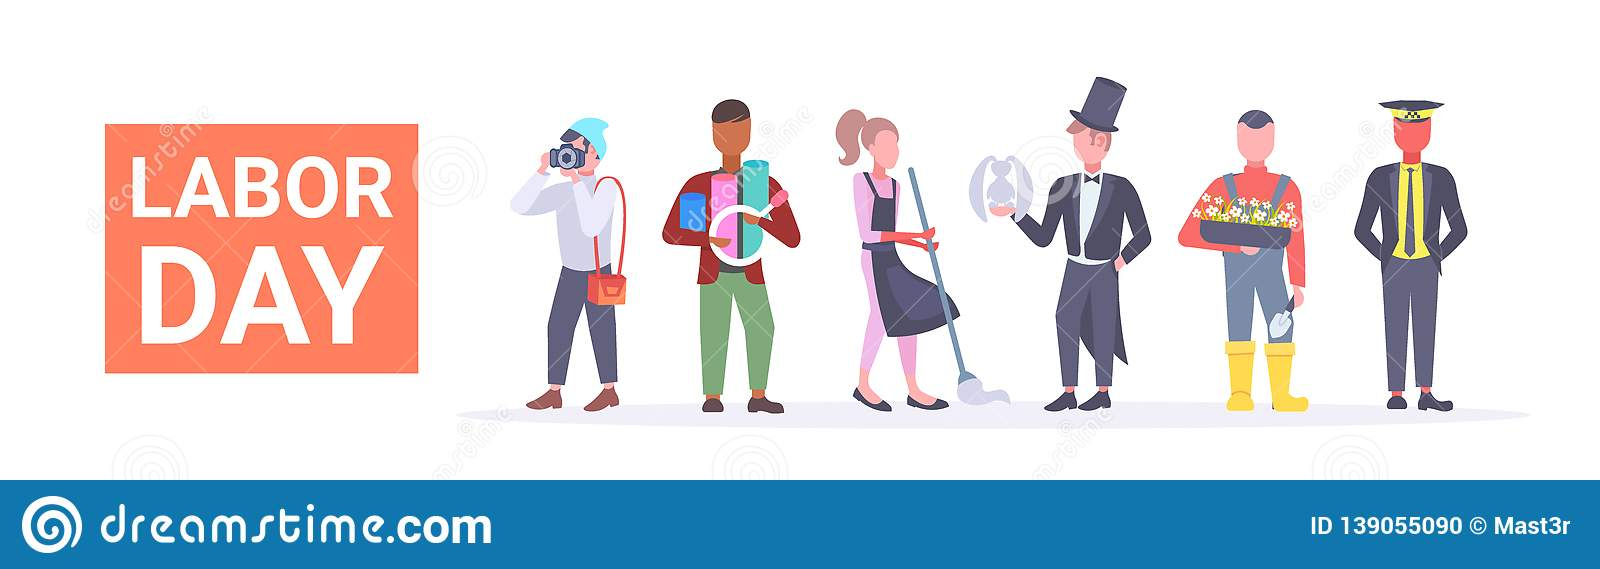 Labor day poster people of different professional occupation holiday celebration concept standing together isolated flat